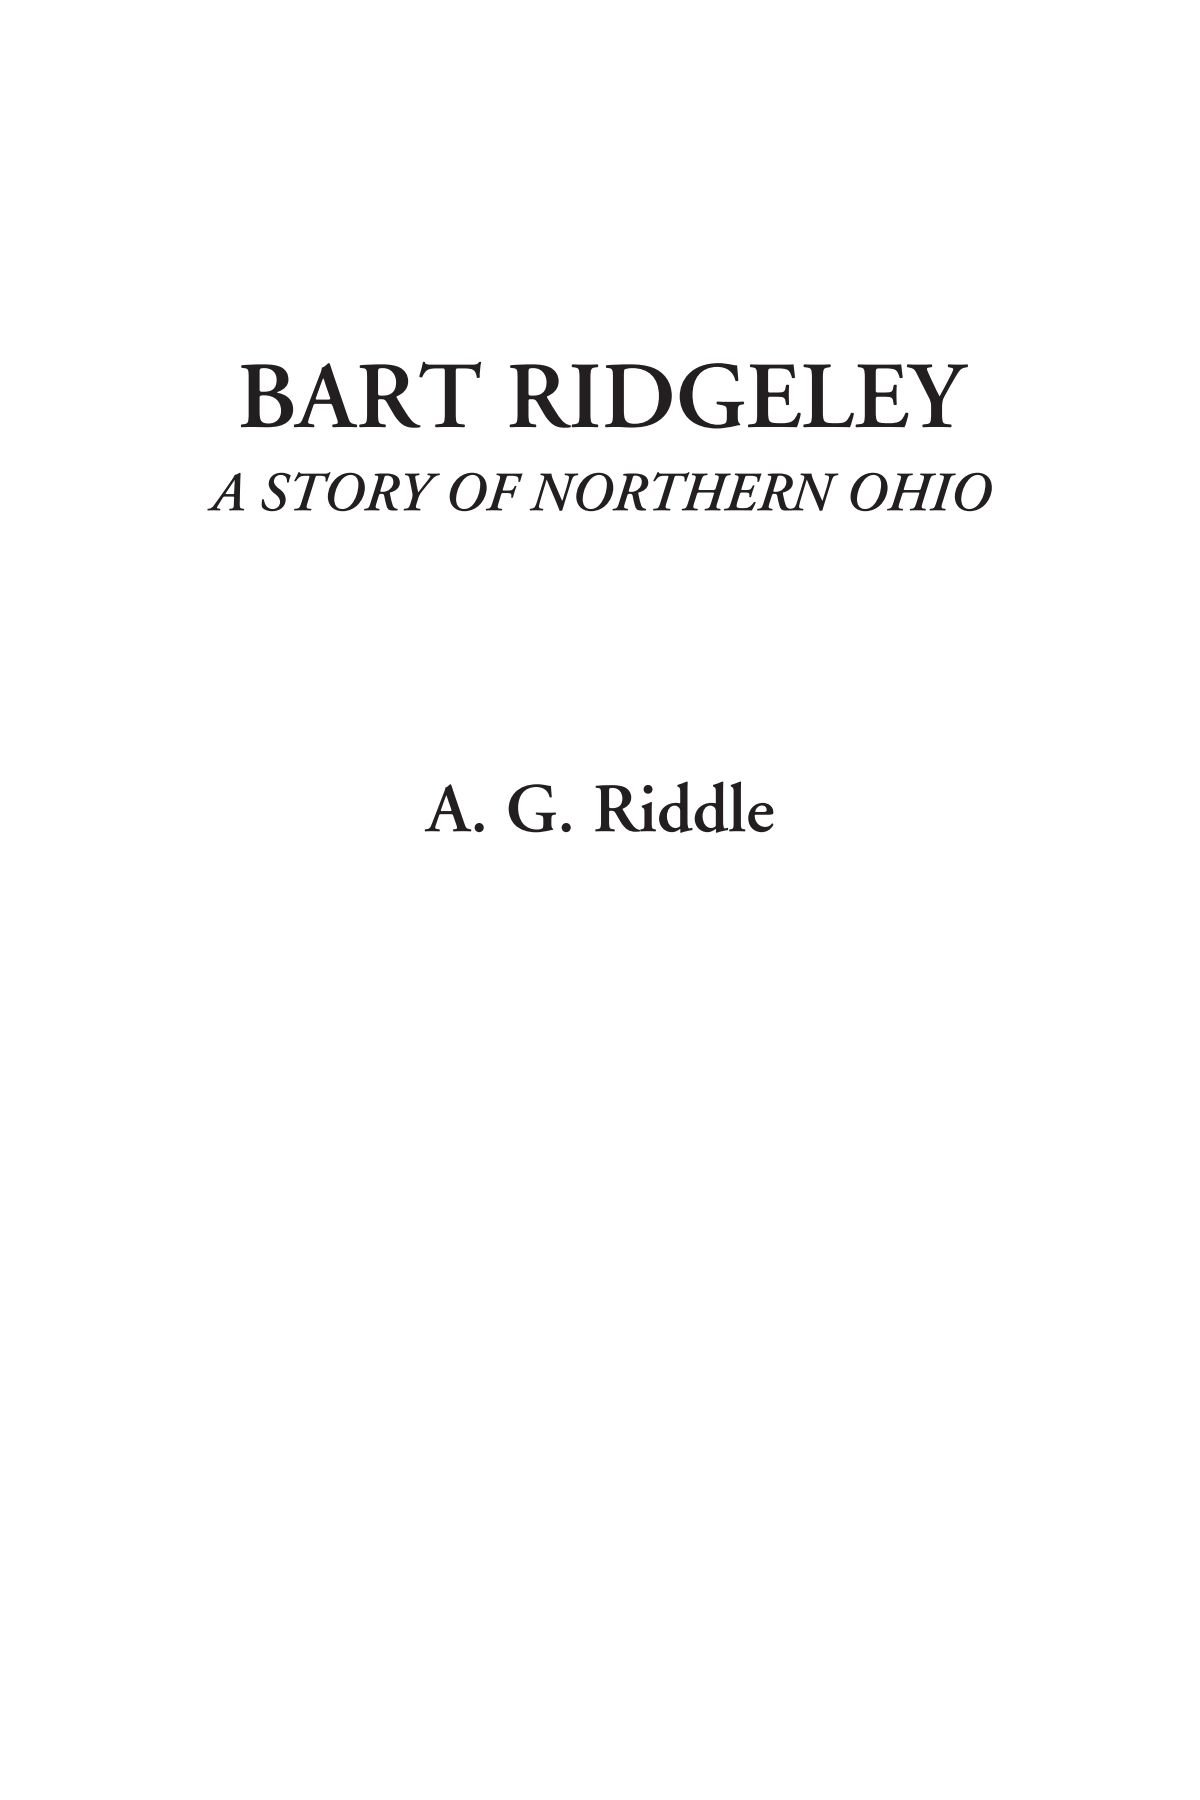 Download Bart Ridgeley (A Story of Northern Ohio) pdf